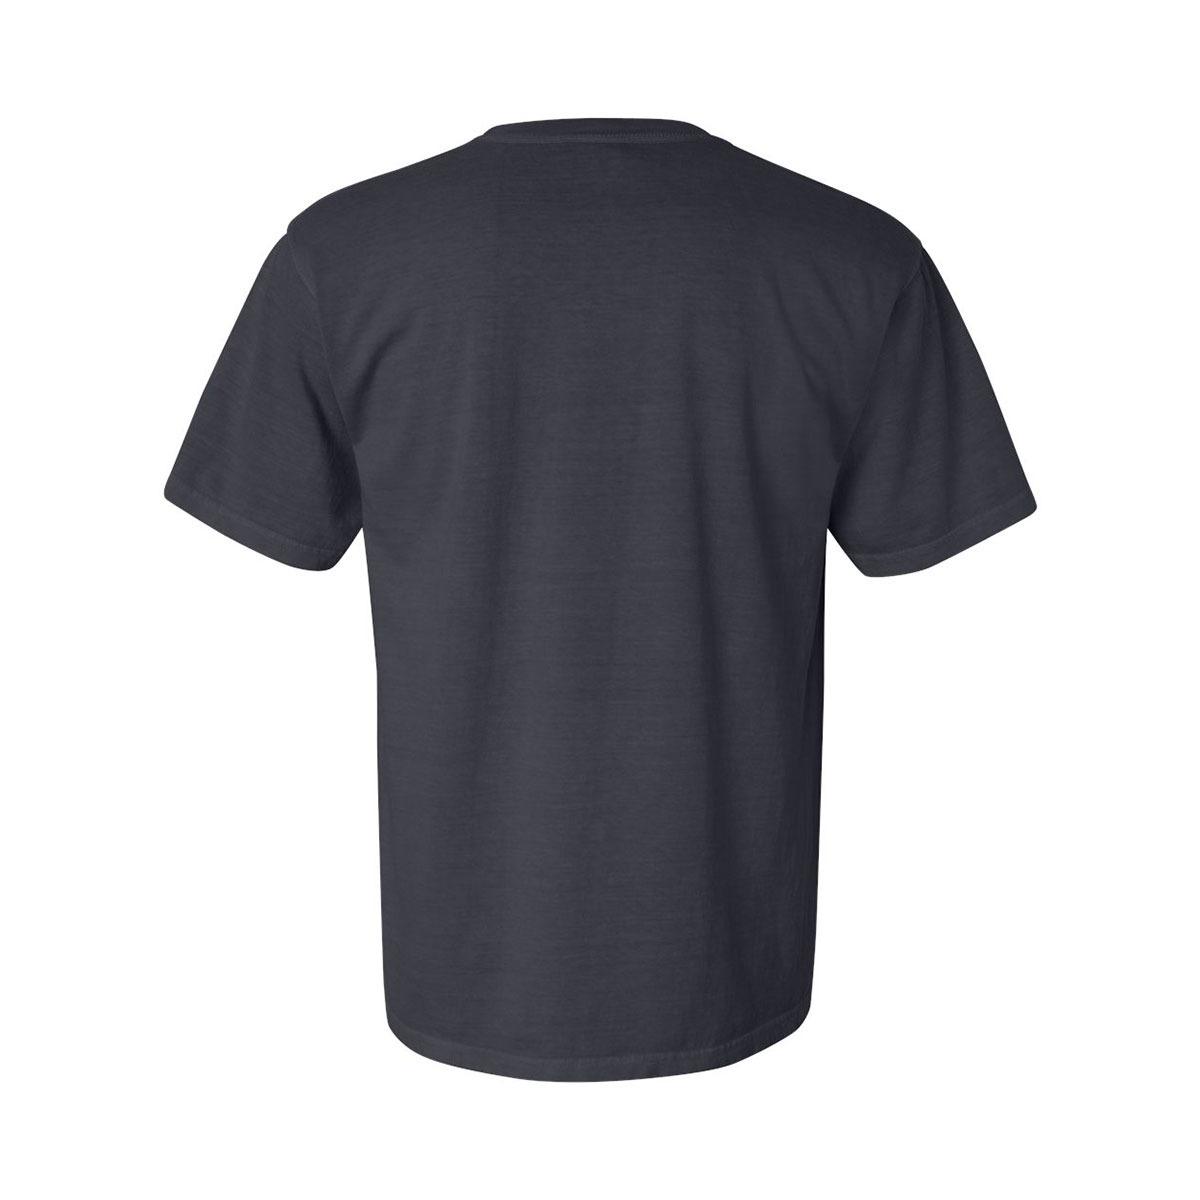 comfort-colors-shirts-graphite-back